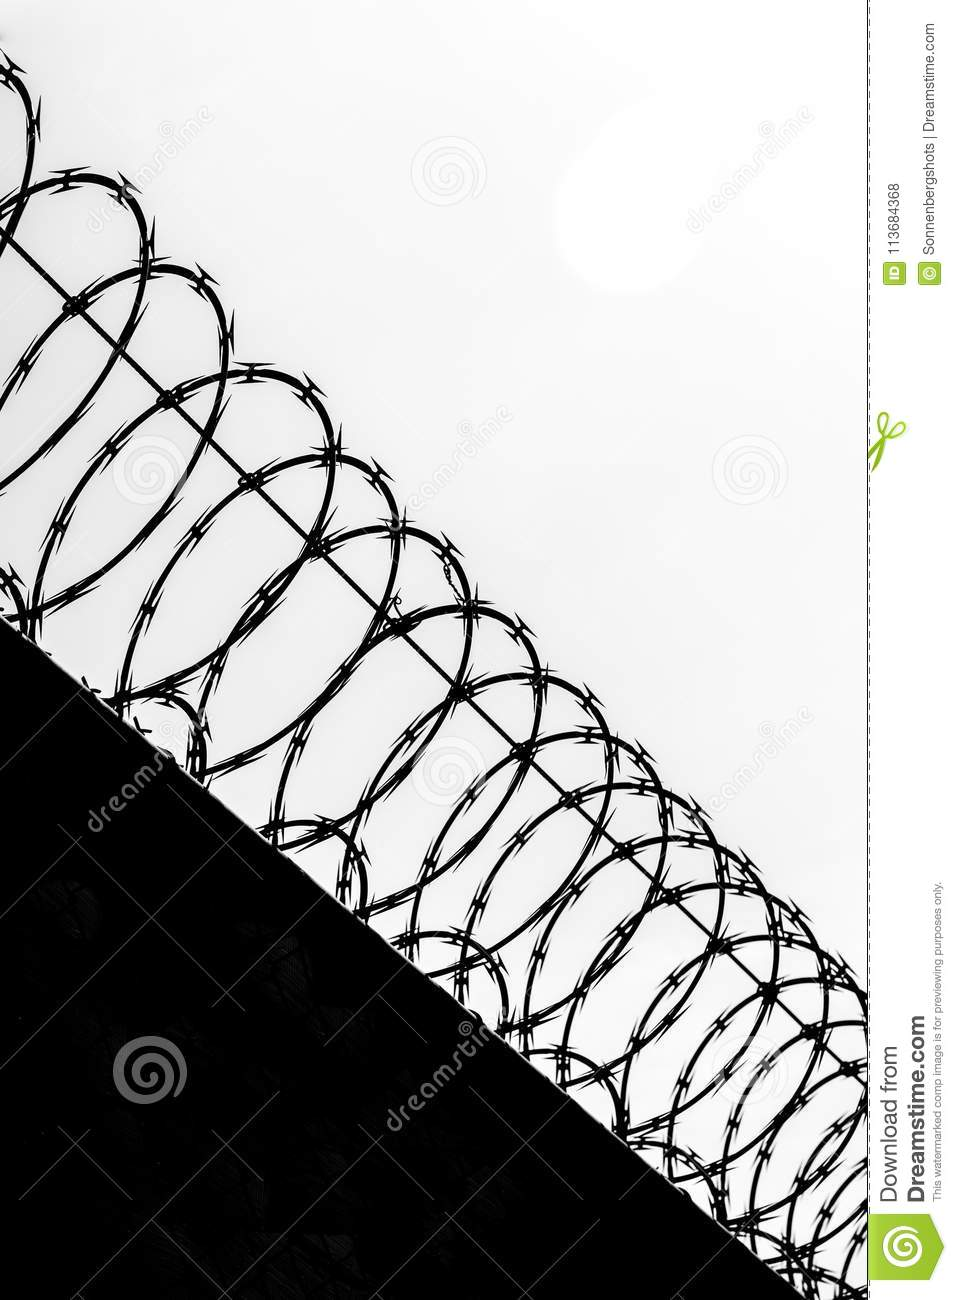 Black And White Silhoutte Of Razor Wire Fence Stock Photo - Image of ...